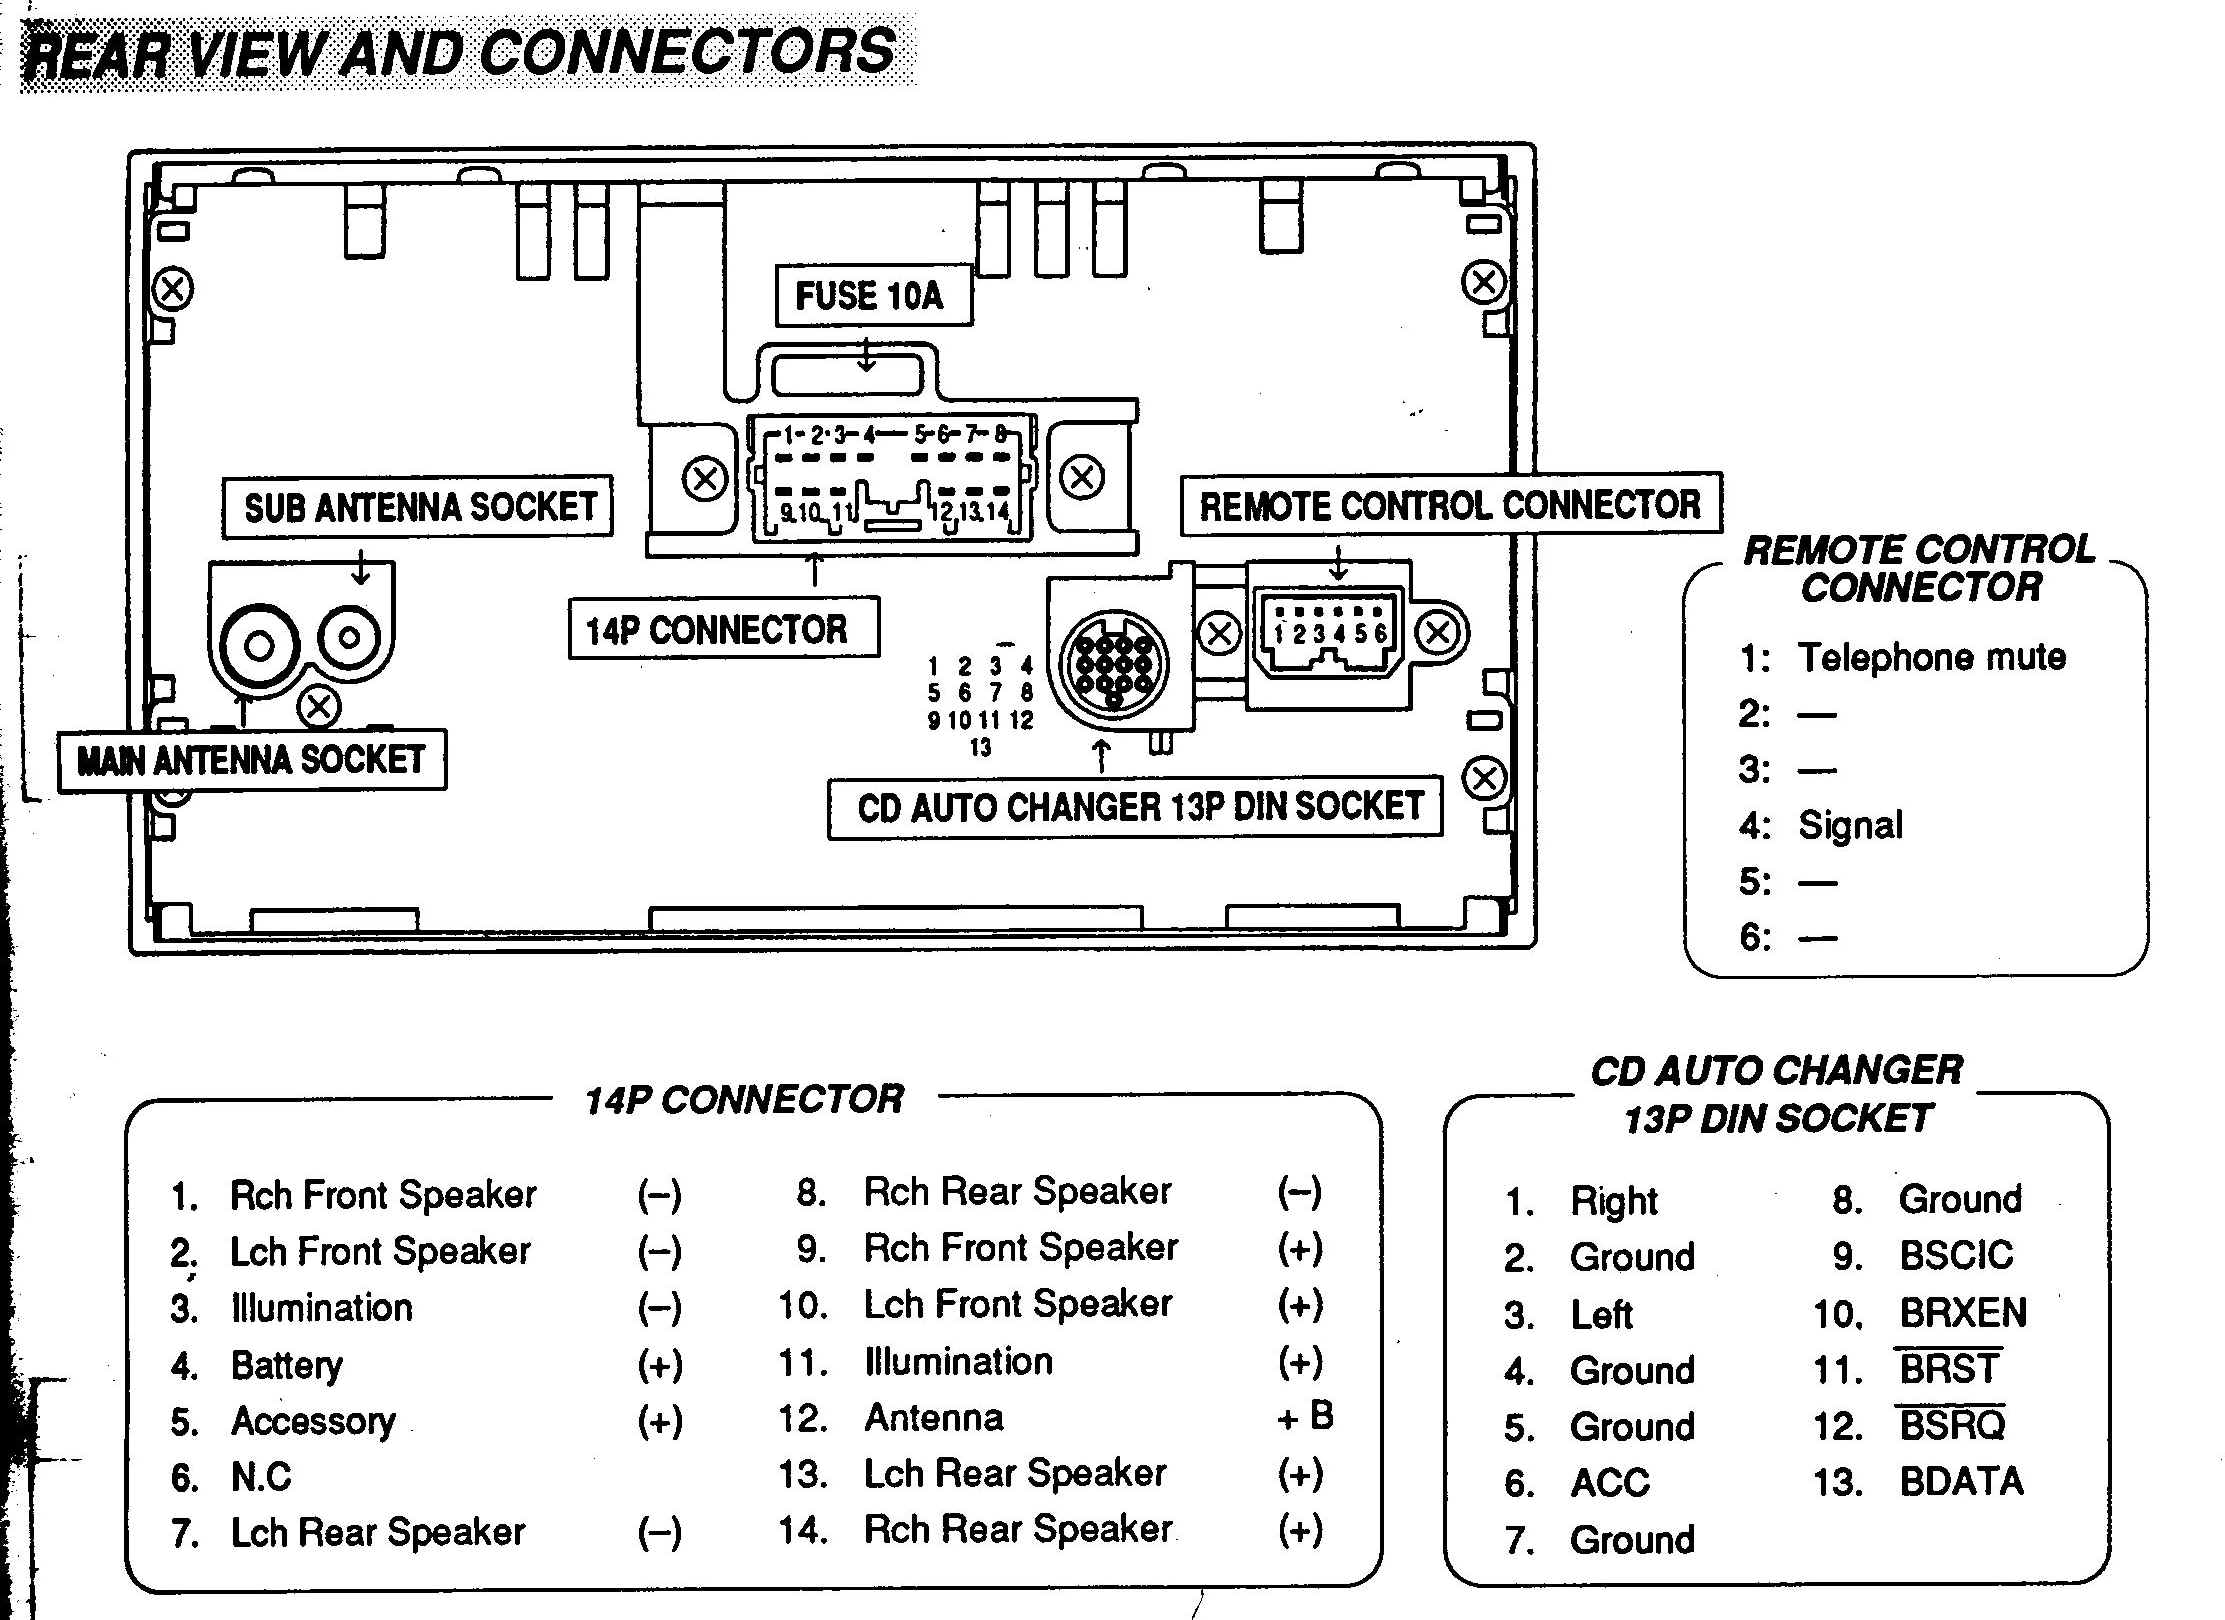 WireHarnessMit121003 car audio wire diagram codes mitsubishi factory car stereo car radio wiring diagram at soozxer.org